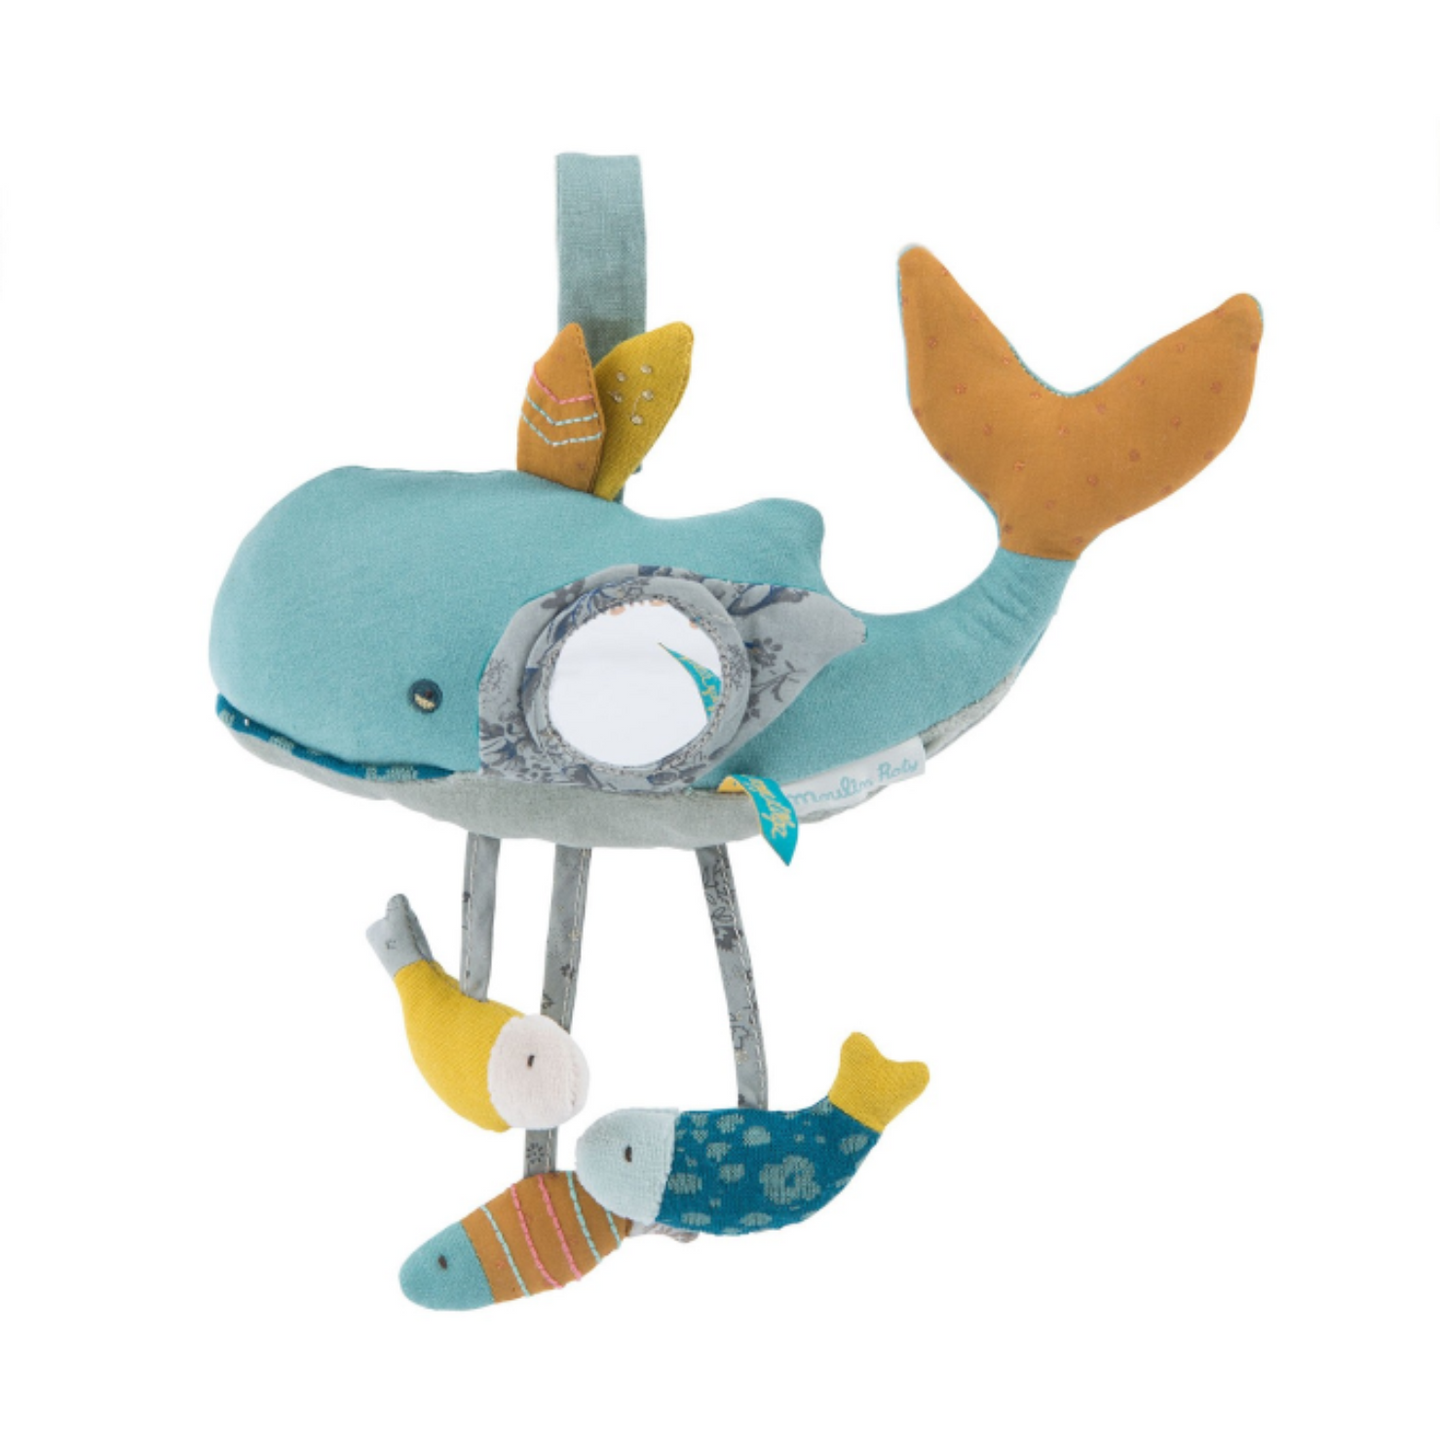 'OLGA'S TRAVELS' ACTIVITY WHALE RATTLE